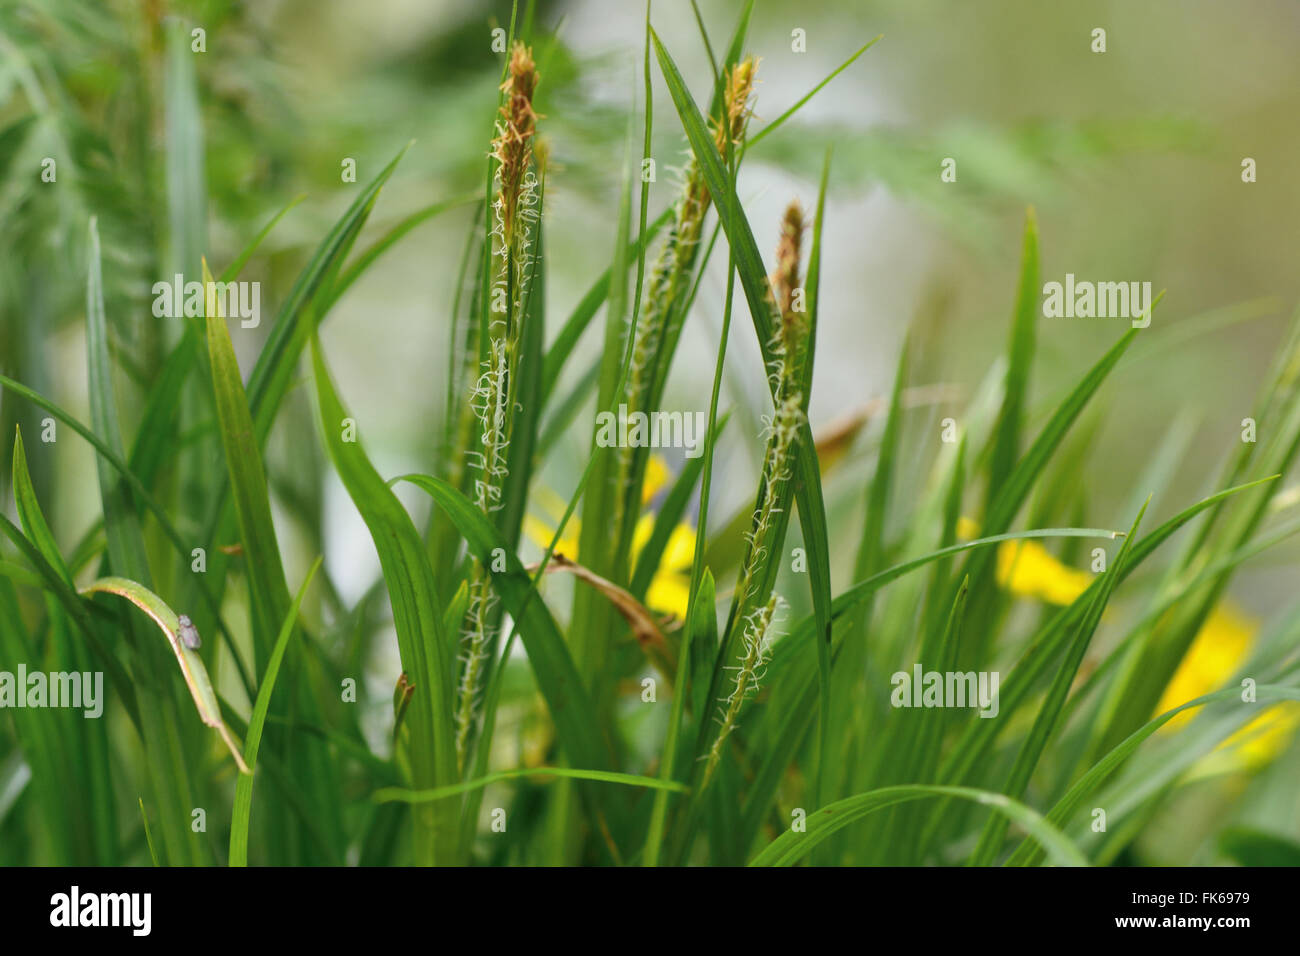 Wood sedge (Carex sylvatica). Flowering plant in the family Cyperaceae, growing in a British woodland - Stock Image